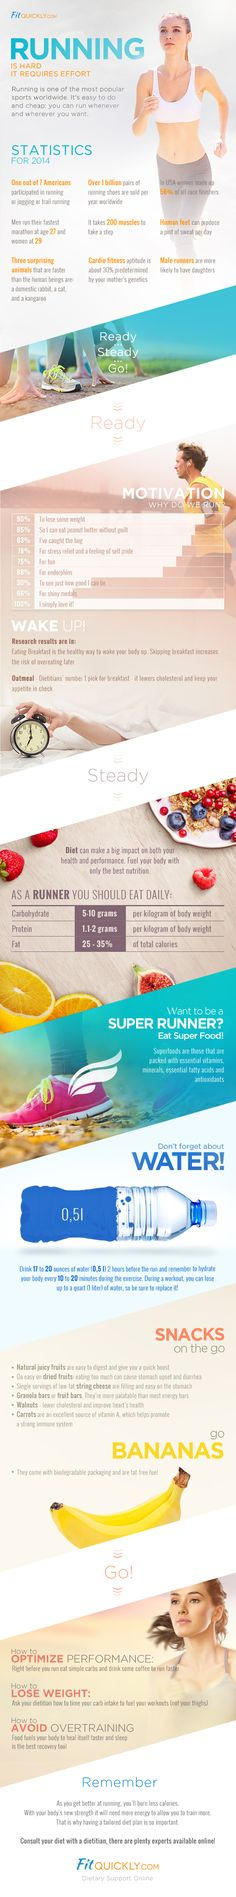 "Our Infographic ""Ready, Steady, Go!"" is designed to help you answer some of the most important question when it comes to fueling your body for running."